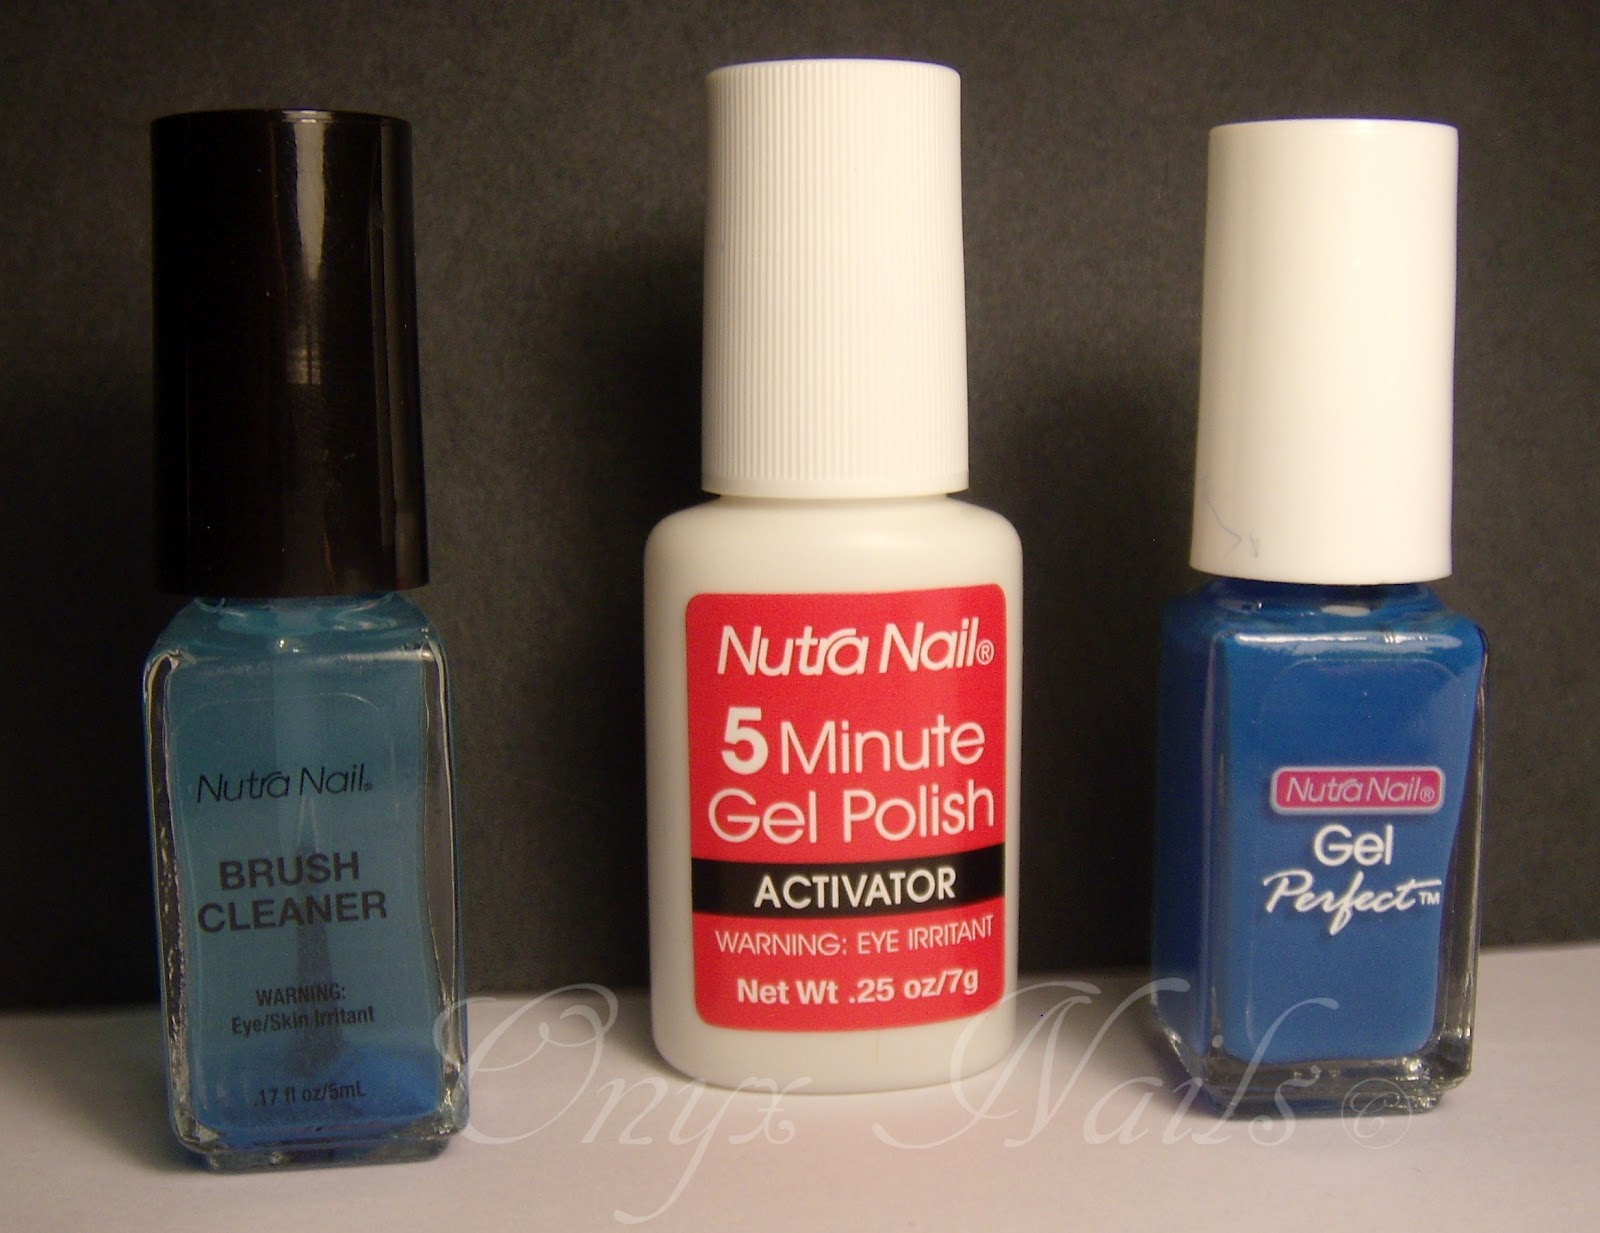 Onyx Nails: Nutra Nail Gel Perfect